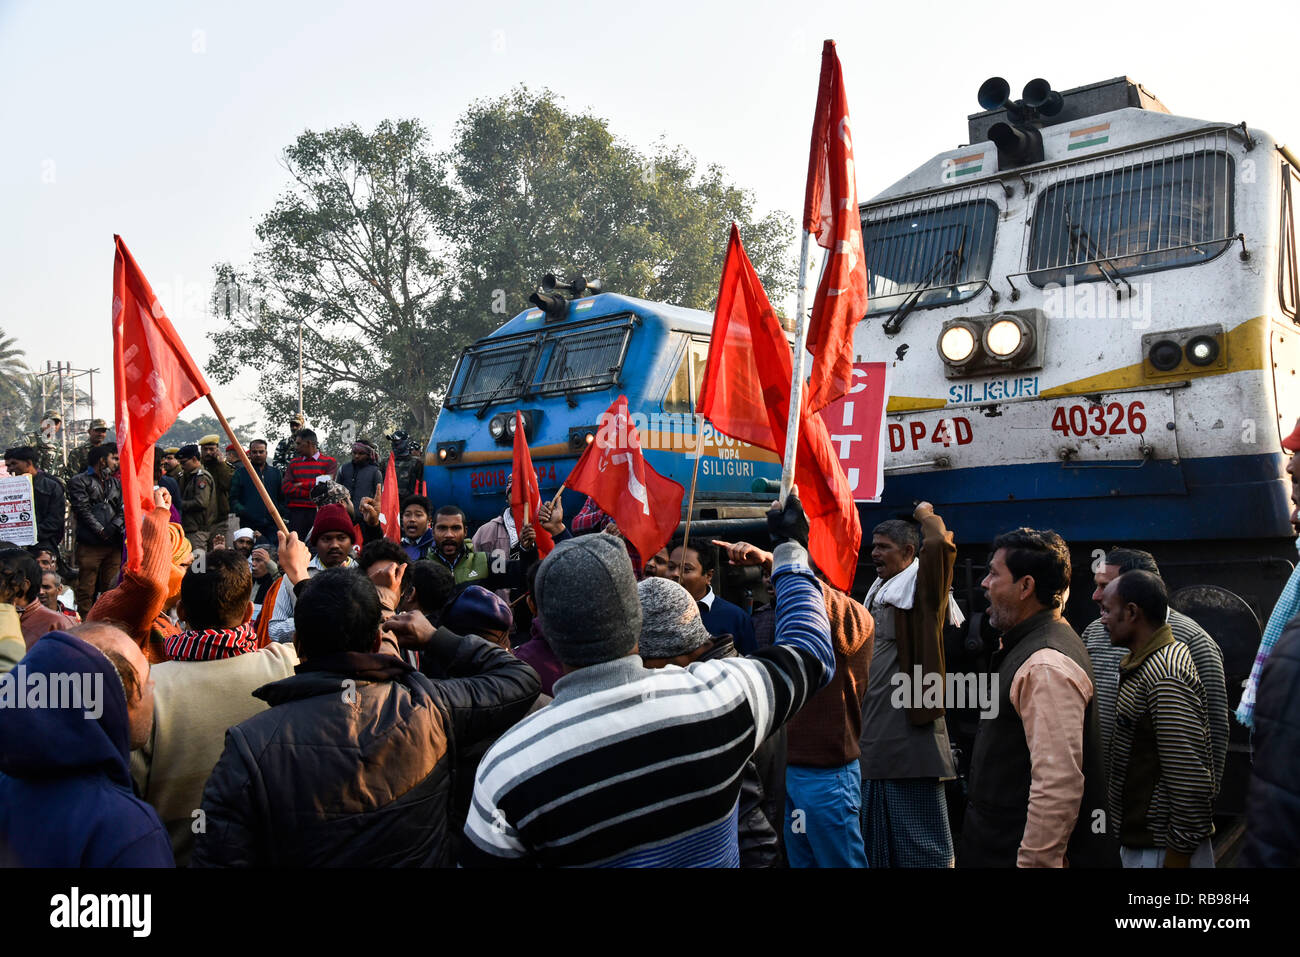 Centre of Indian Trade Unions (CITU) nationwide strike. Guwahati, Assam, India. Jan 8, 2019. Activists from the Centre of Indian Trade Unions (CITU), which is politically aligned with the Communist Party of India (Marxist), block trains at Guwahati Railway Station during a nationwide strike in Guwahati, nearly 200 million Indian workers went on a two-day nationwide strike January 8 to protest 'anti-labour policies' of Prime Minister Narendra Modi's government, triggering sporadic violence in some cities. PHOTO: DAVID TALUKDAR. Credit: David Talukdar/Alamy Live News - Stock Image